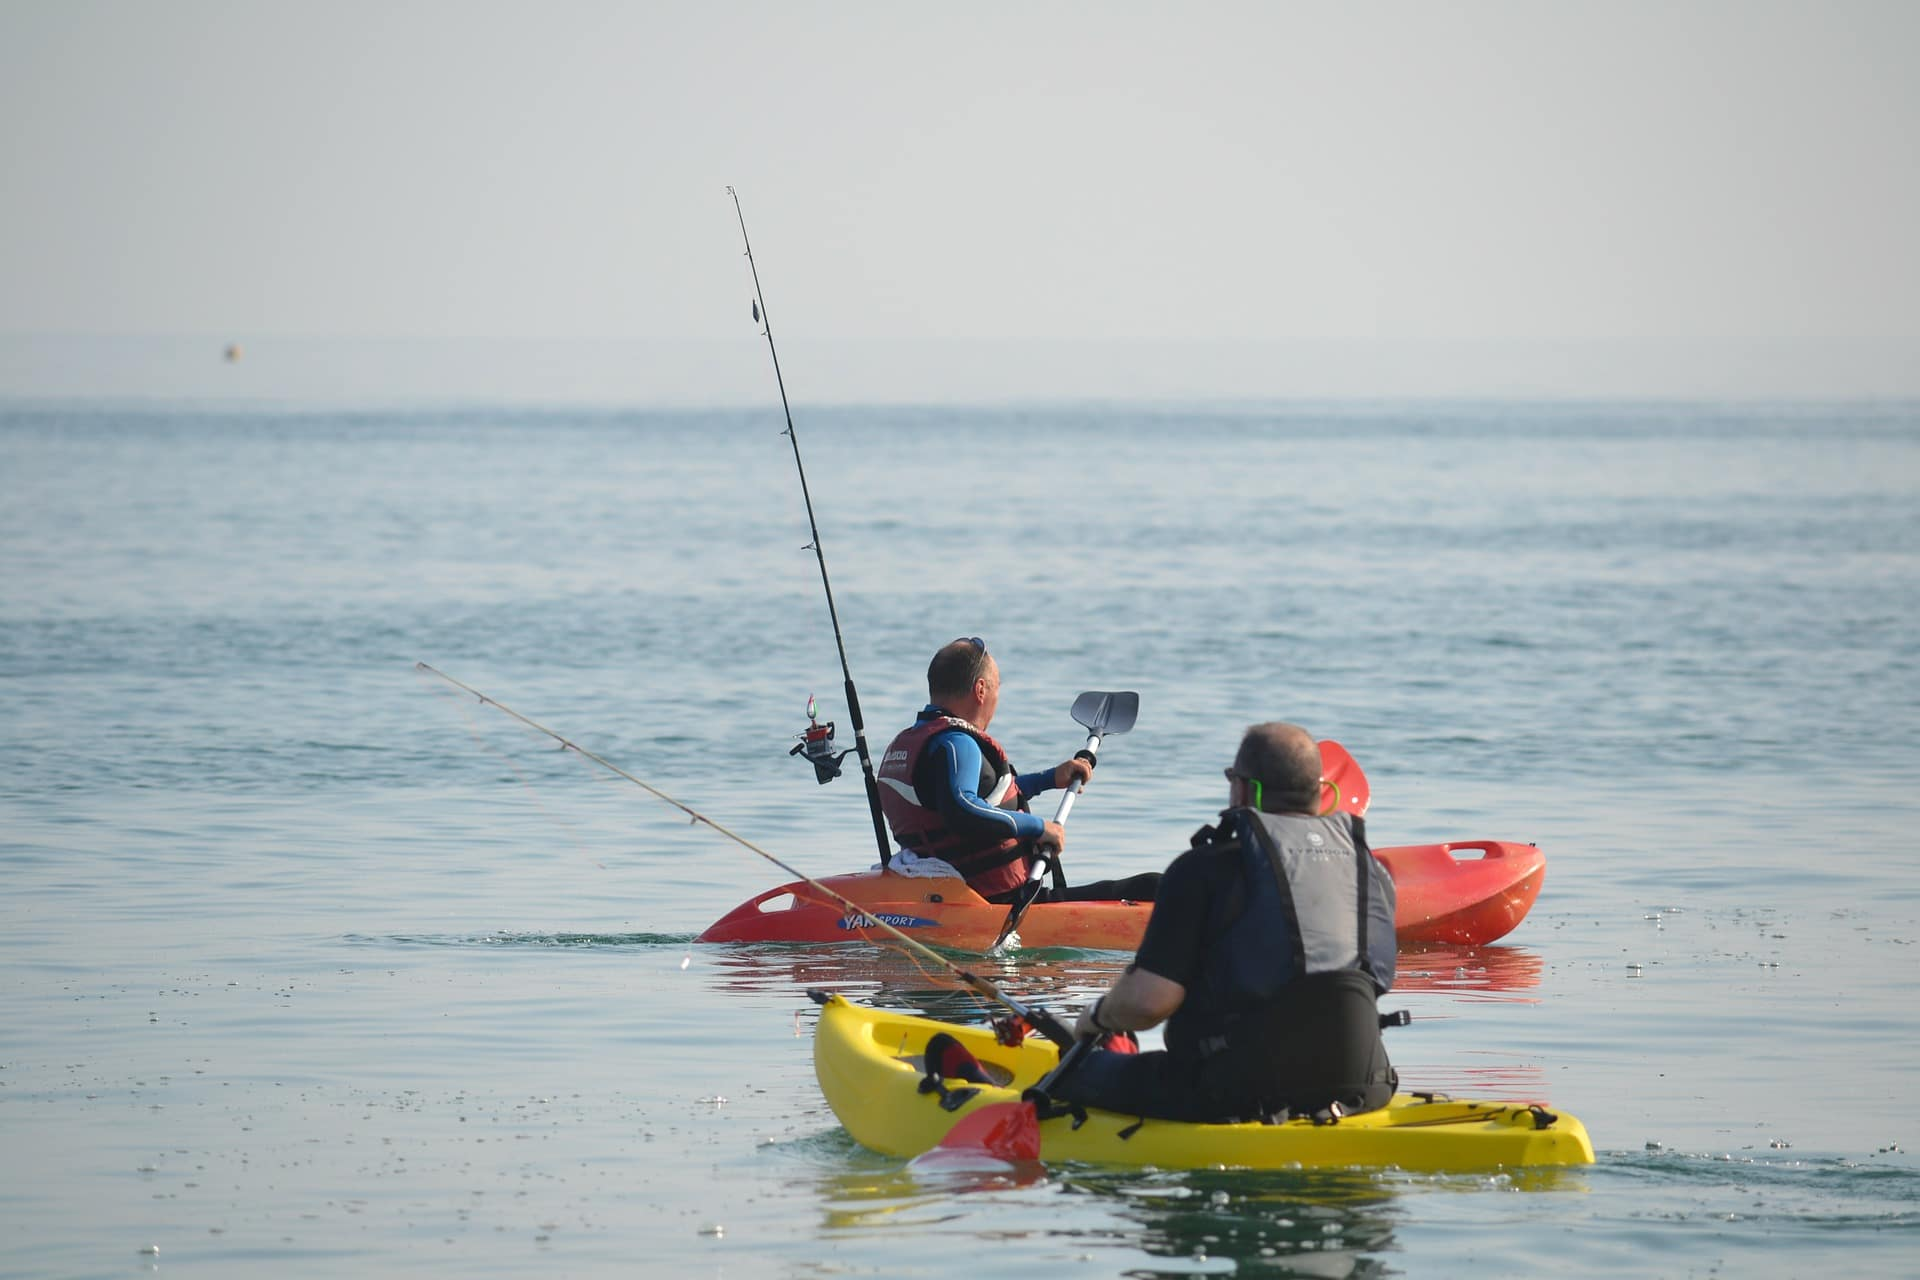 12 Effective Saltwater Kayak Fishing Tips – Catch More Fish & Avoid Risks!